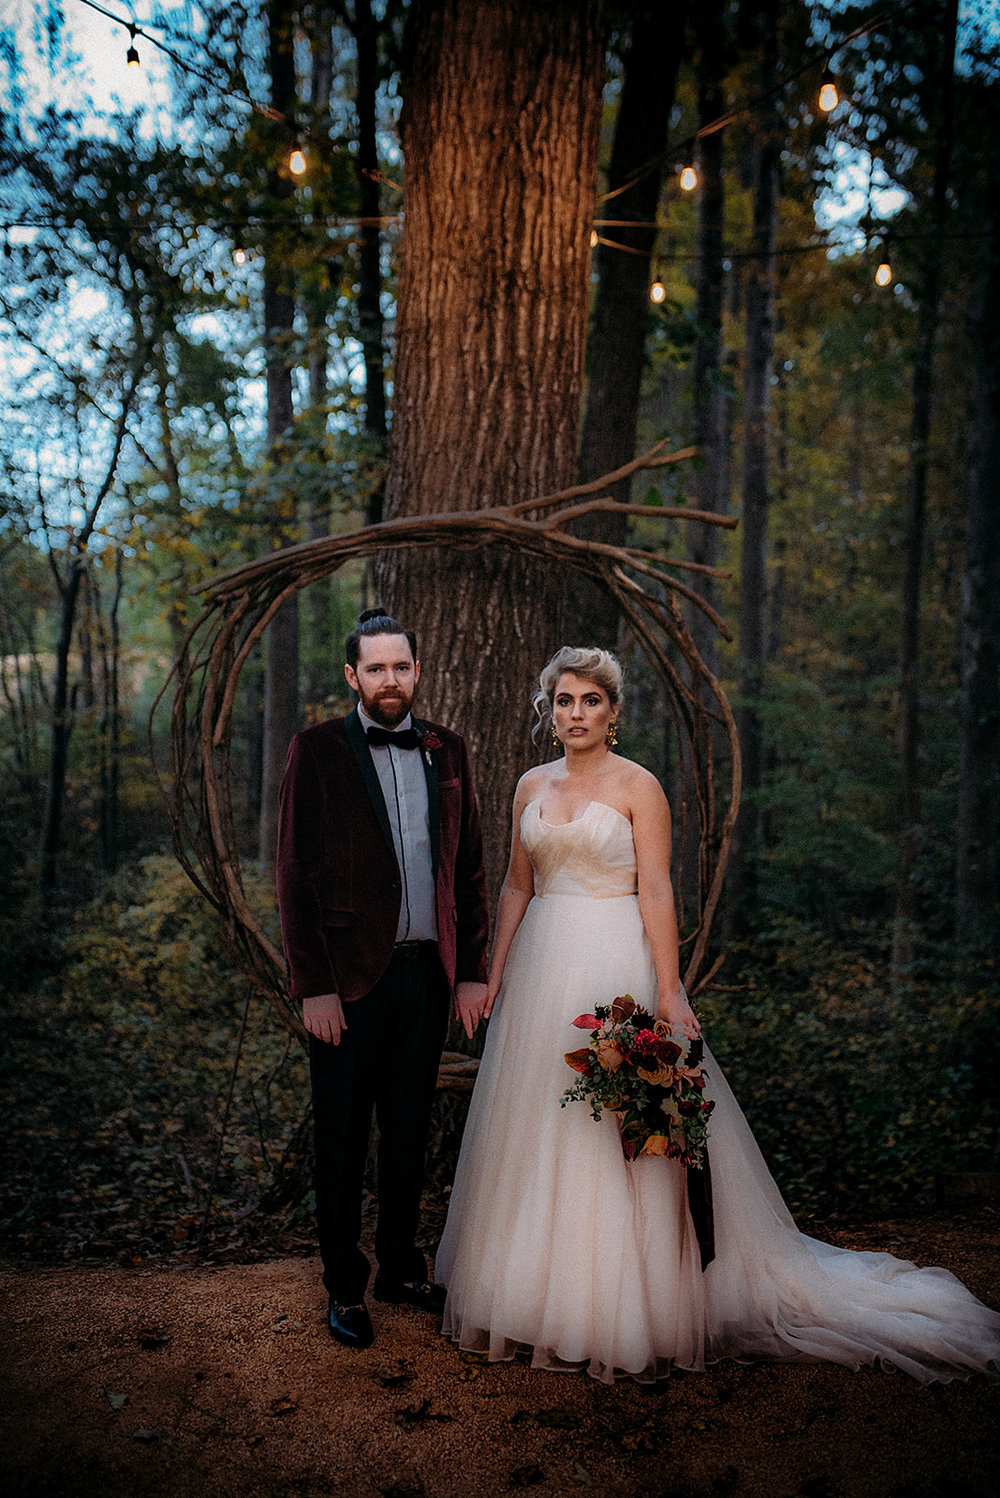 Dark and Moody fall wedding, Color Fields, Burgundy and Blush wedding bouquet, The Meadows- Raleigh